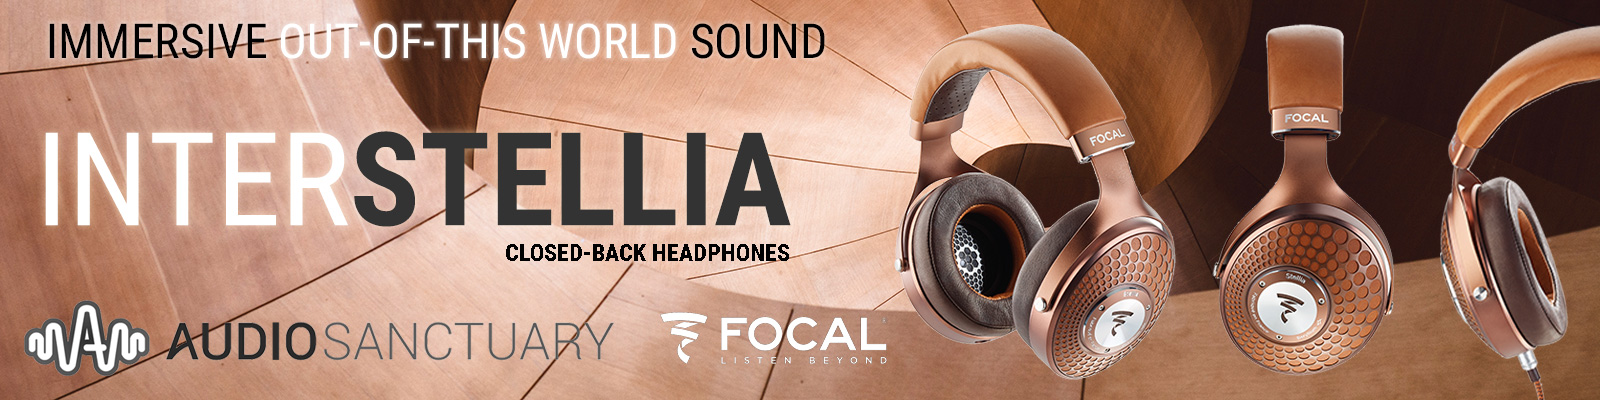 Focal Stellia Closed-Back Headphones | Audio Sanctuary